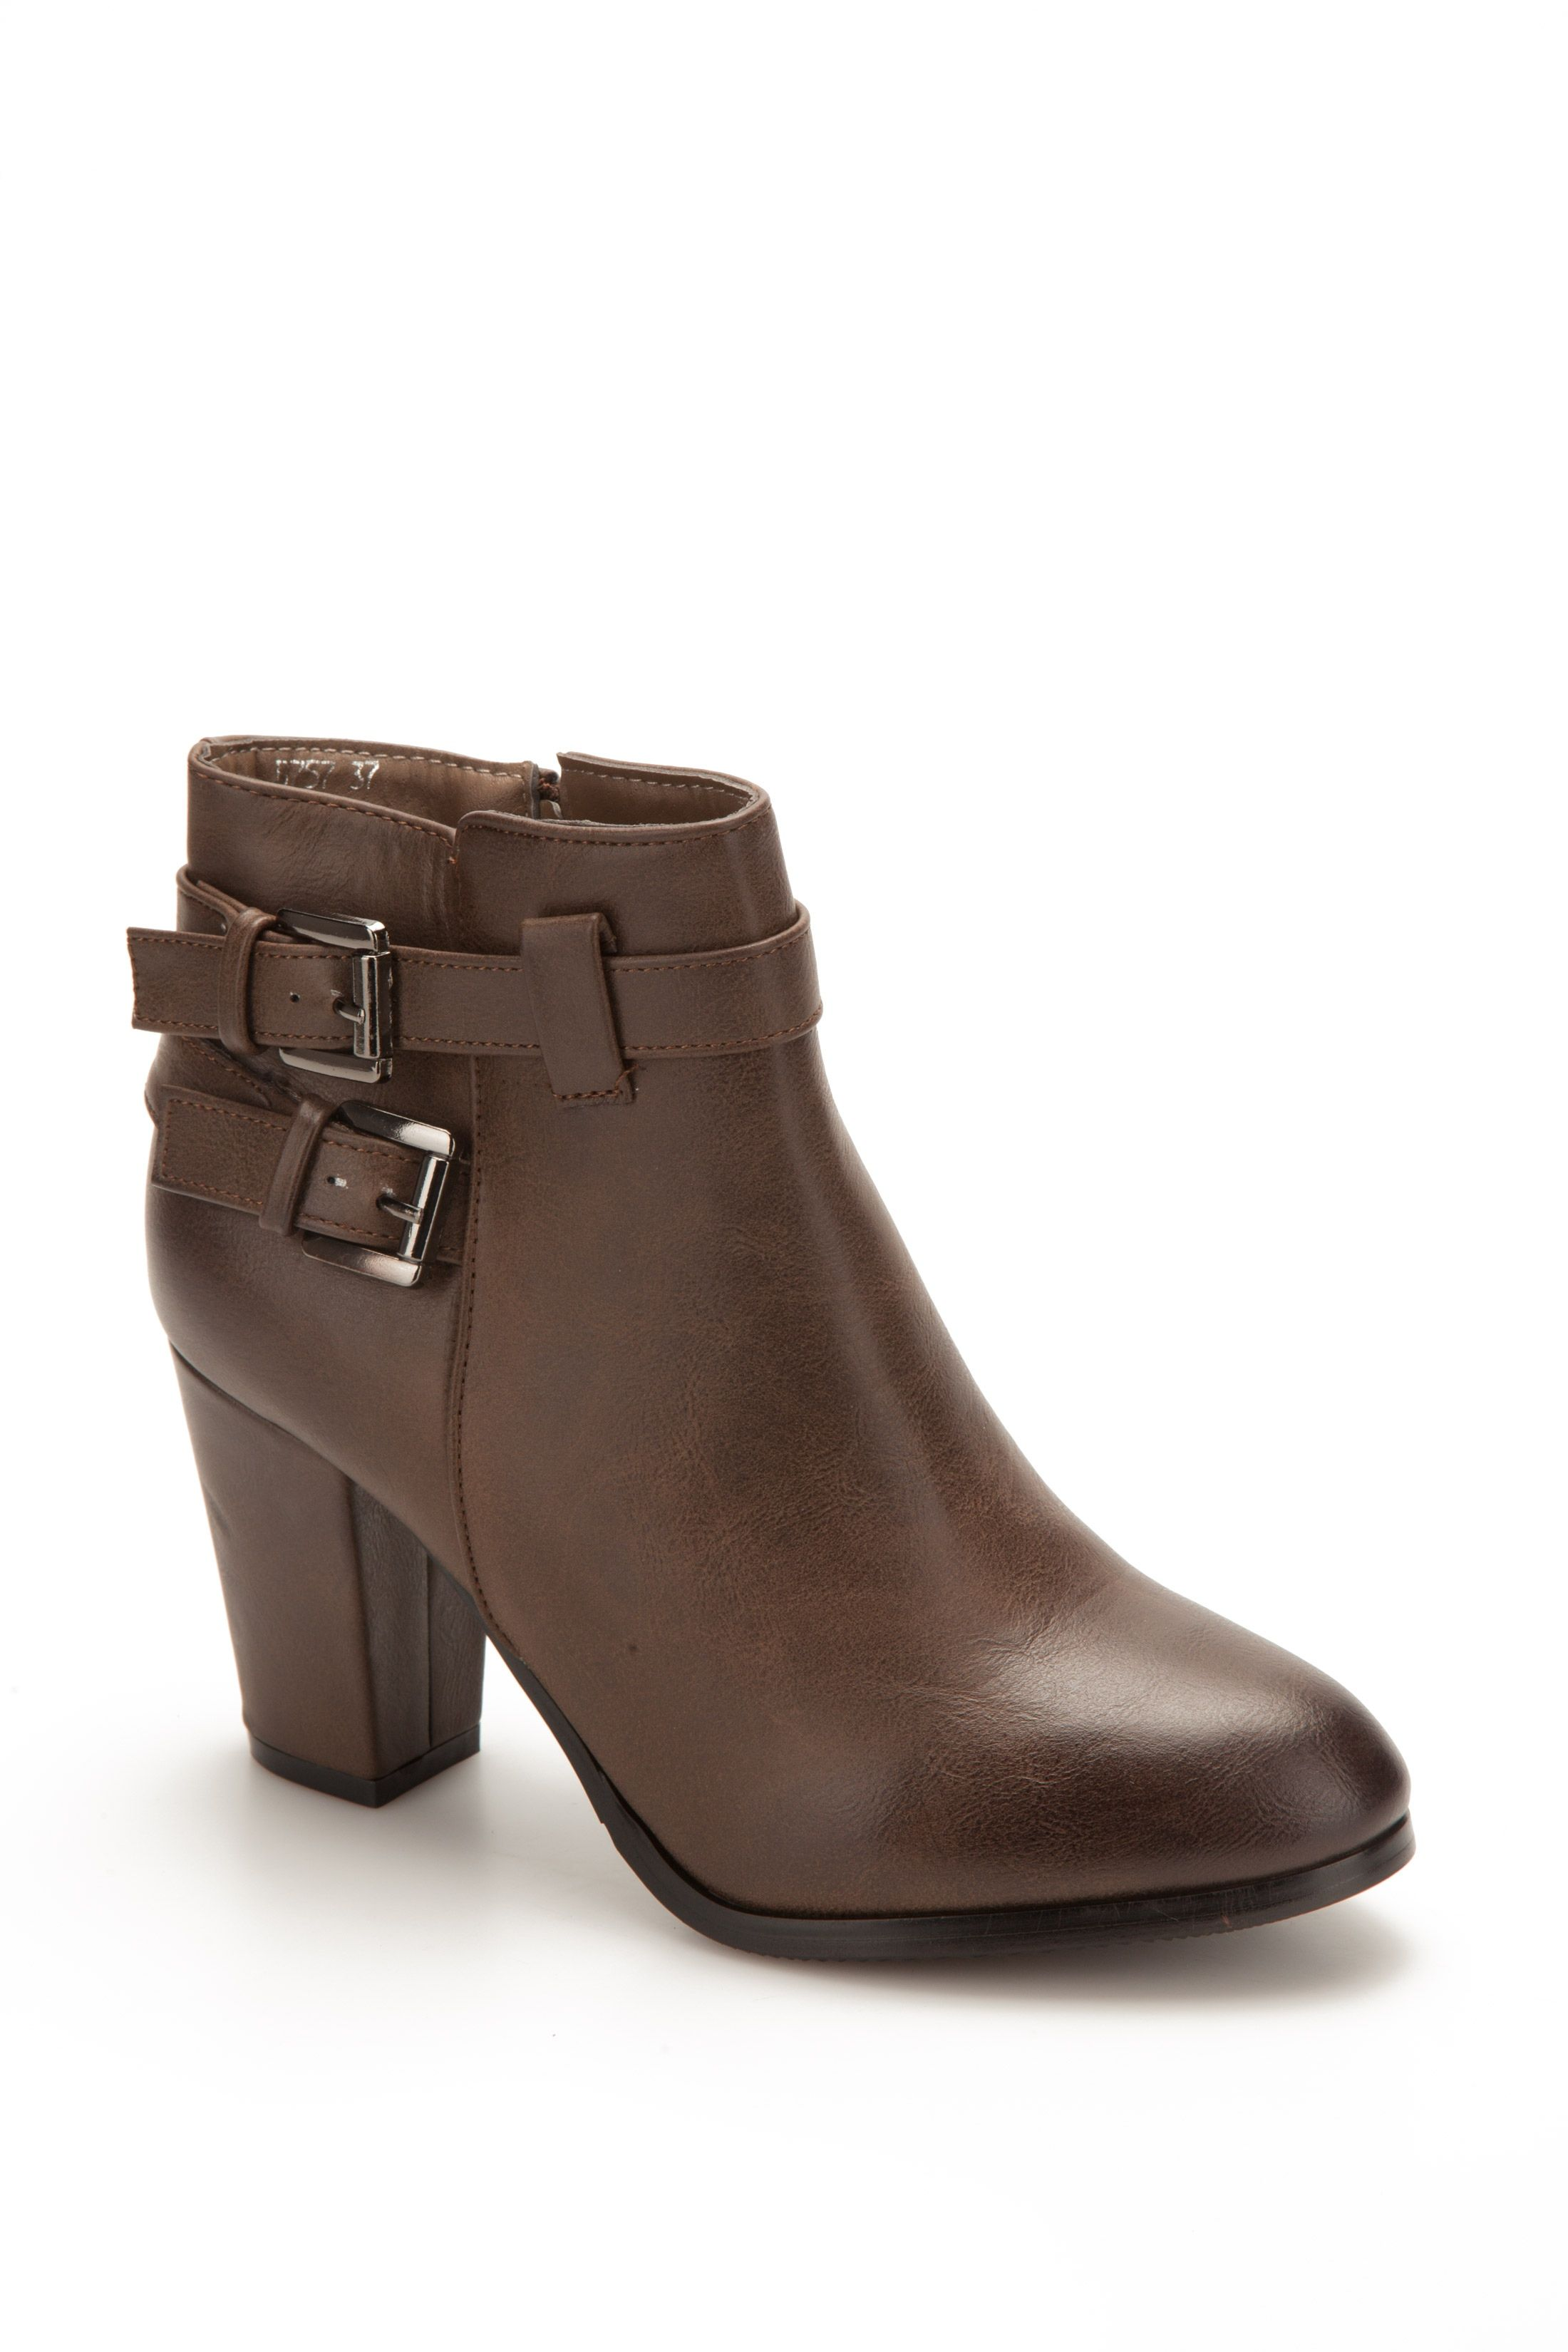 http://static3.stand-prive.com/176571/bottines-multilaniere-taupe.jpg